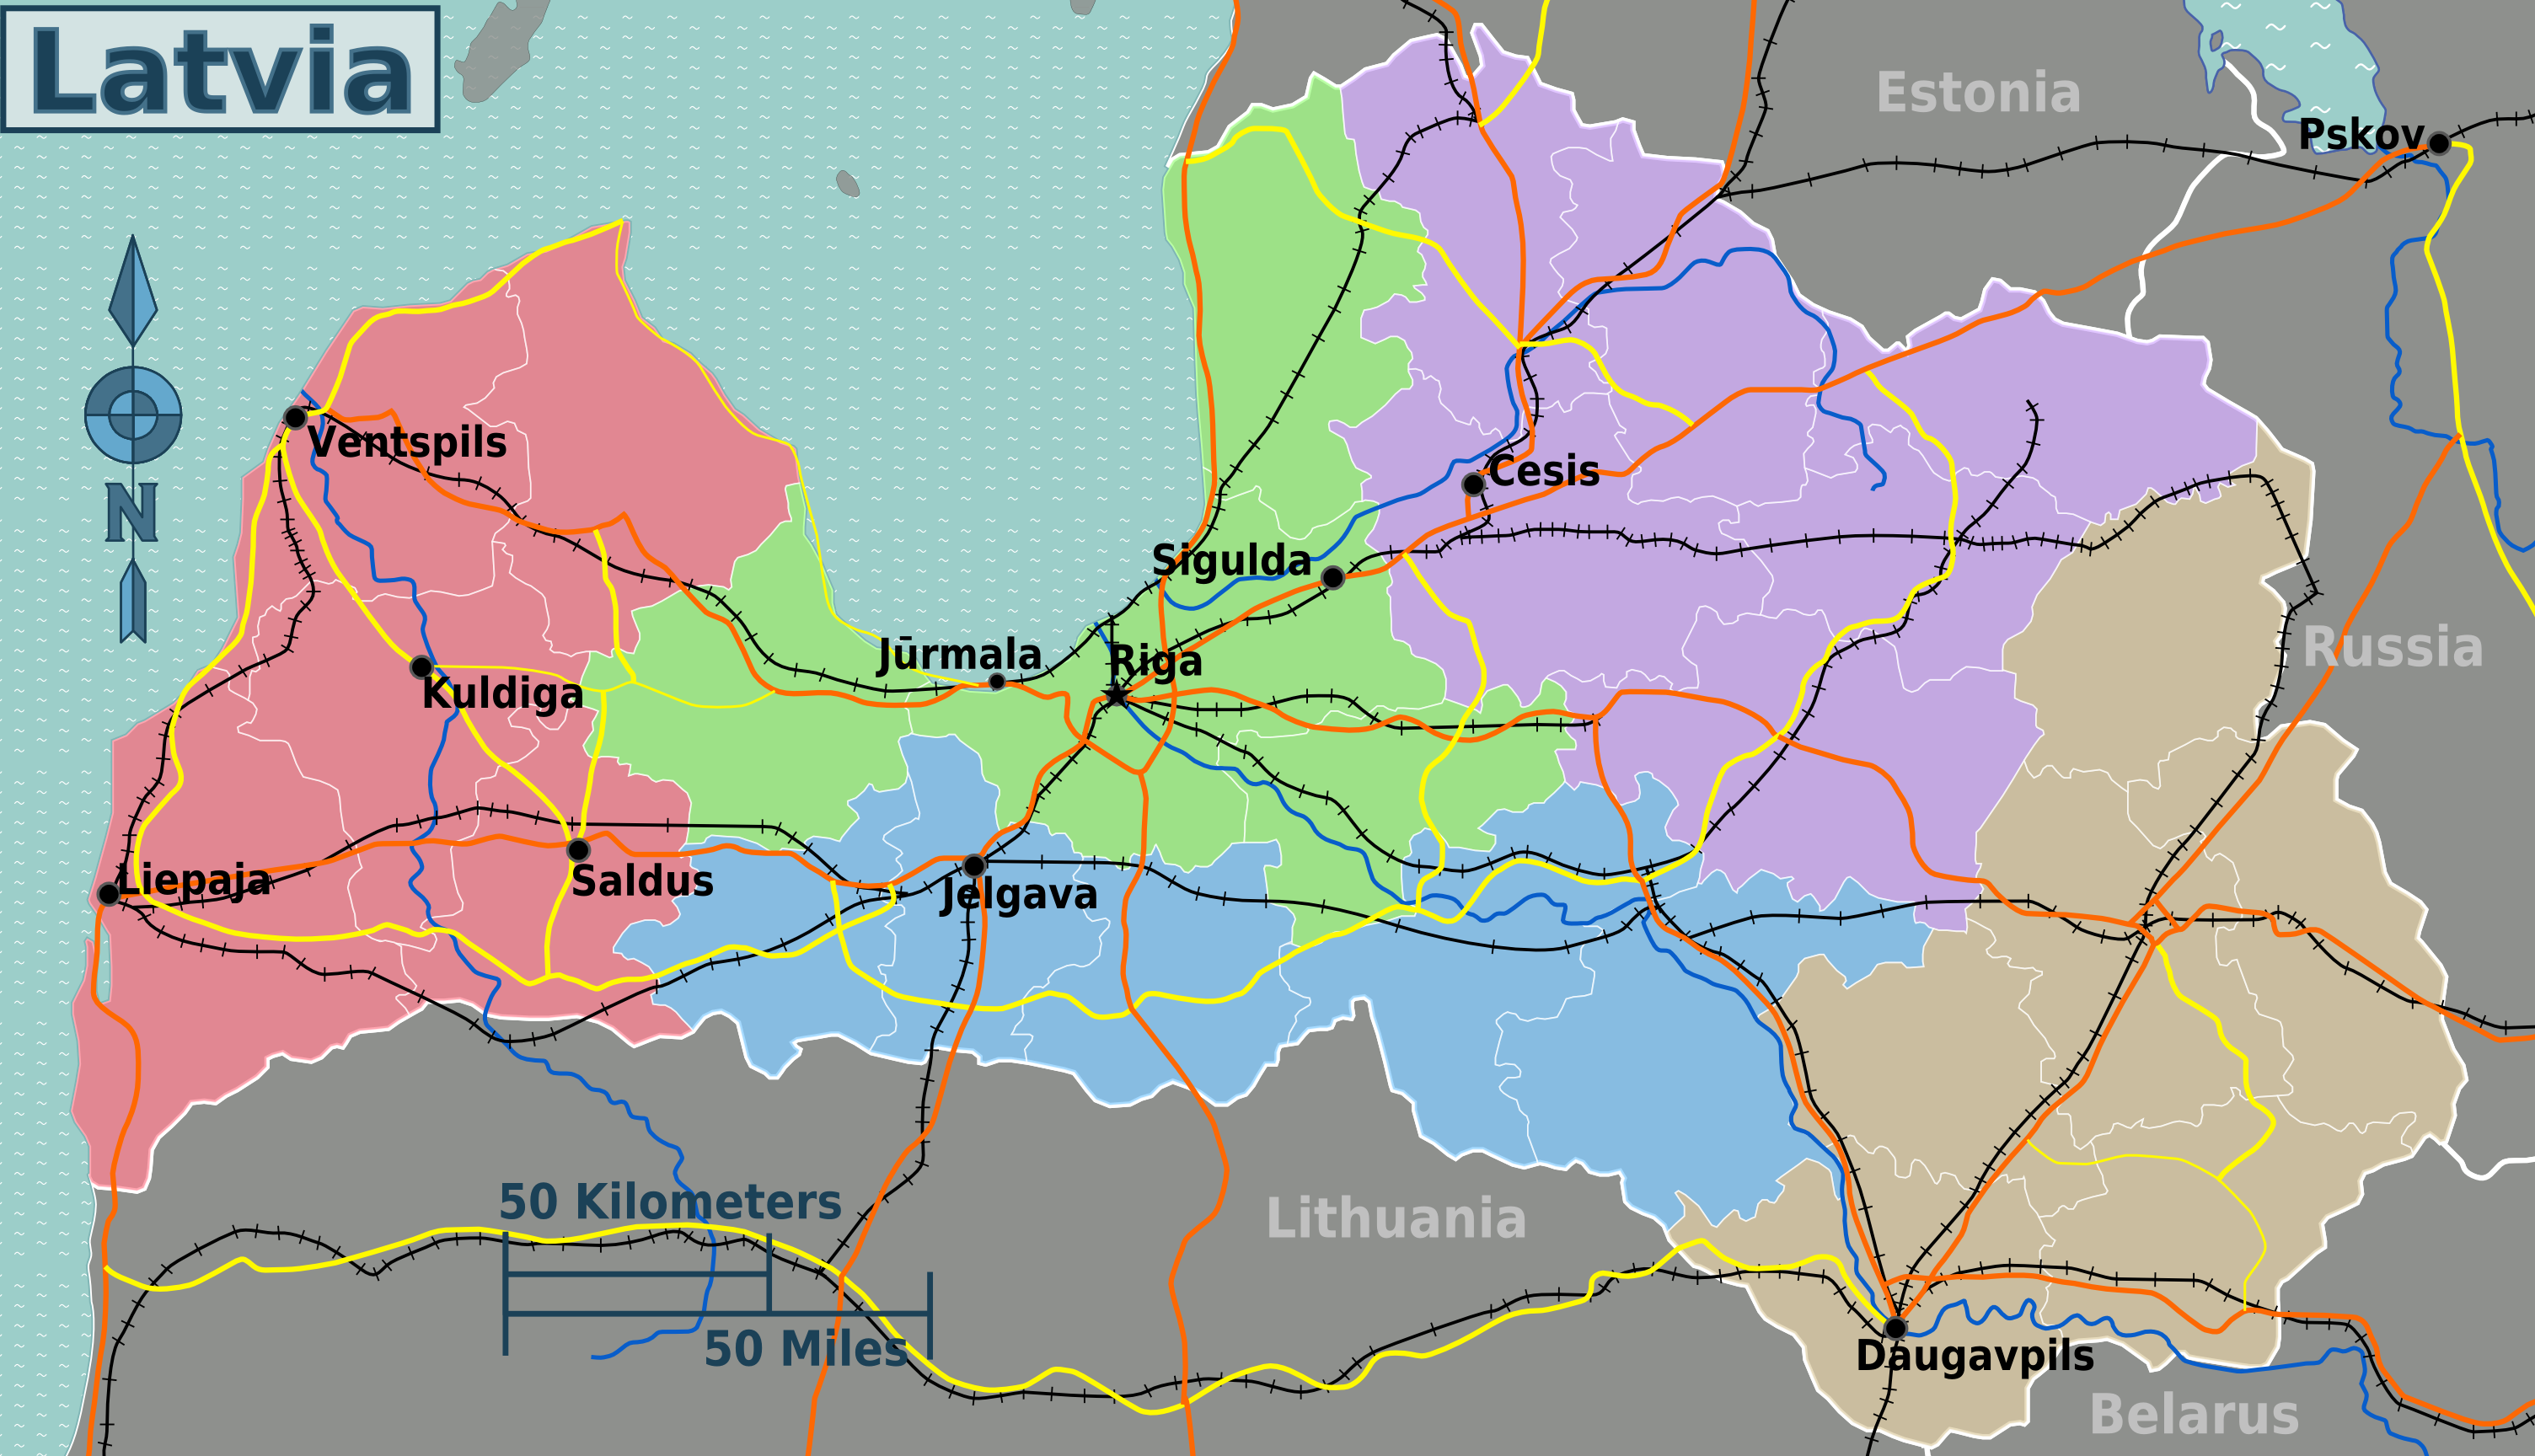 FileLatvia regions mappng Wikimedia Commons